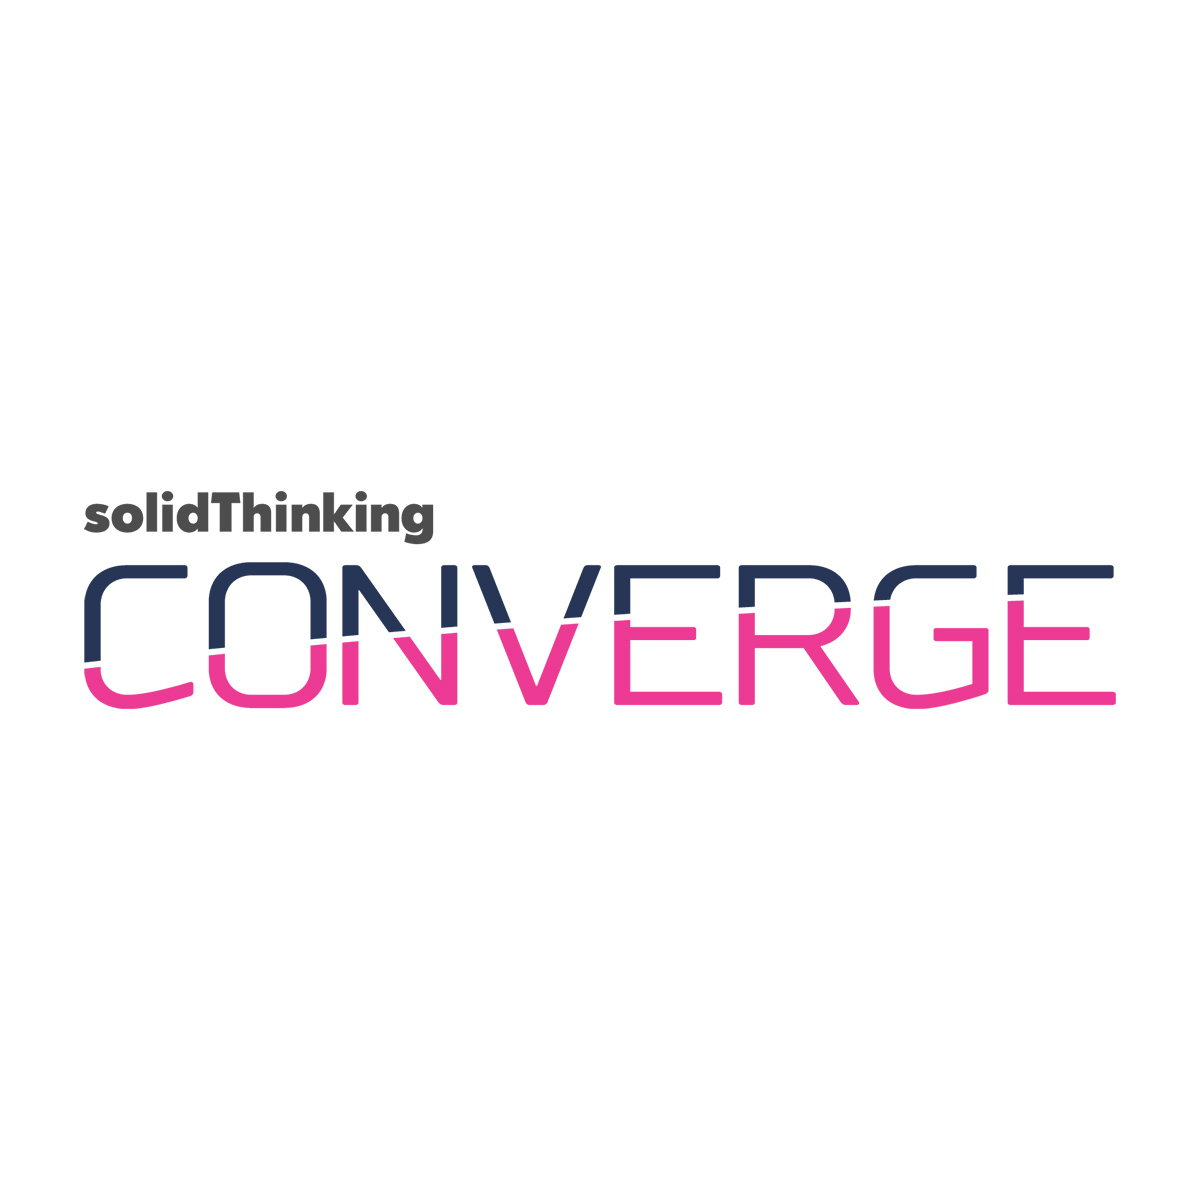 Converge Europe 2017 - Explore the Intersection of Design and Technology